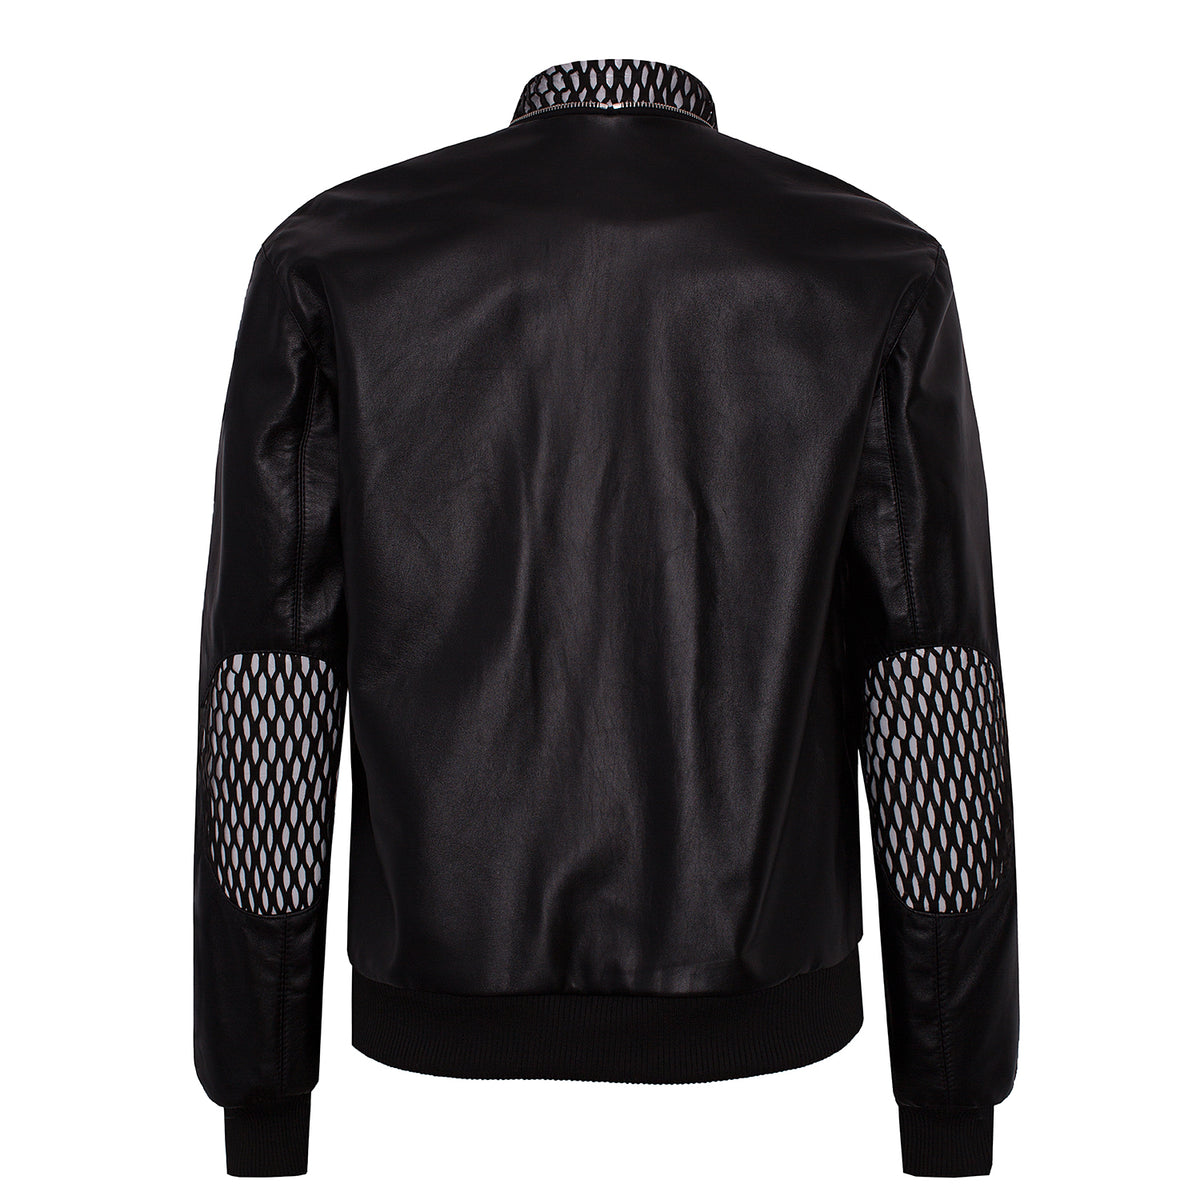 'sNet' Leather Bomber Jacket - VOLS & ORIGINAL